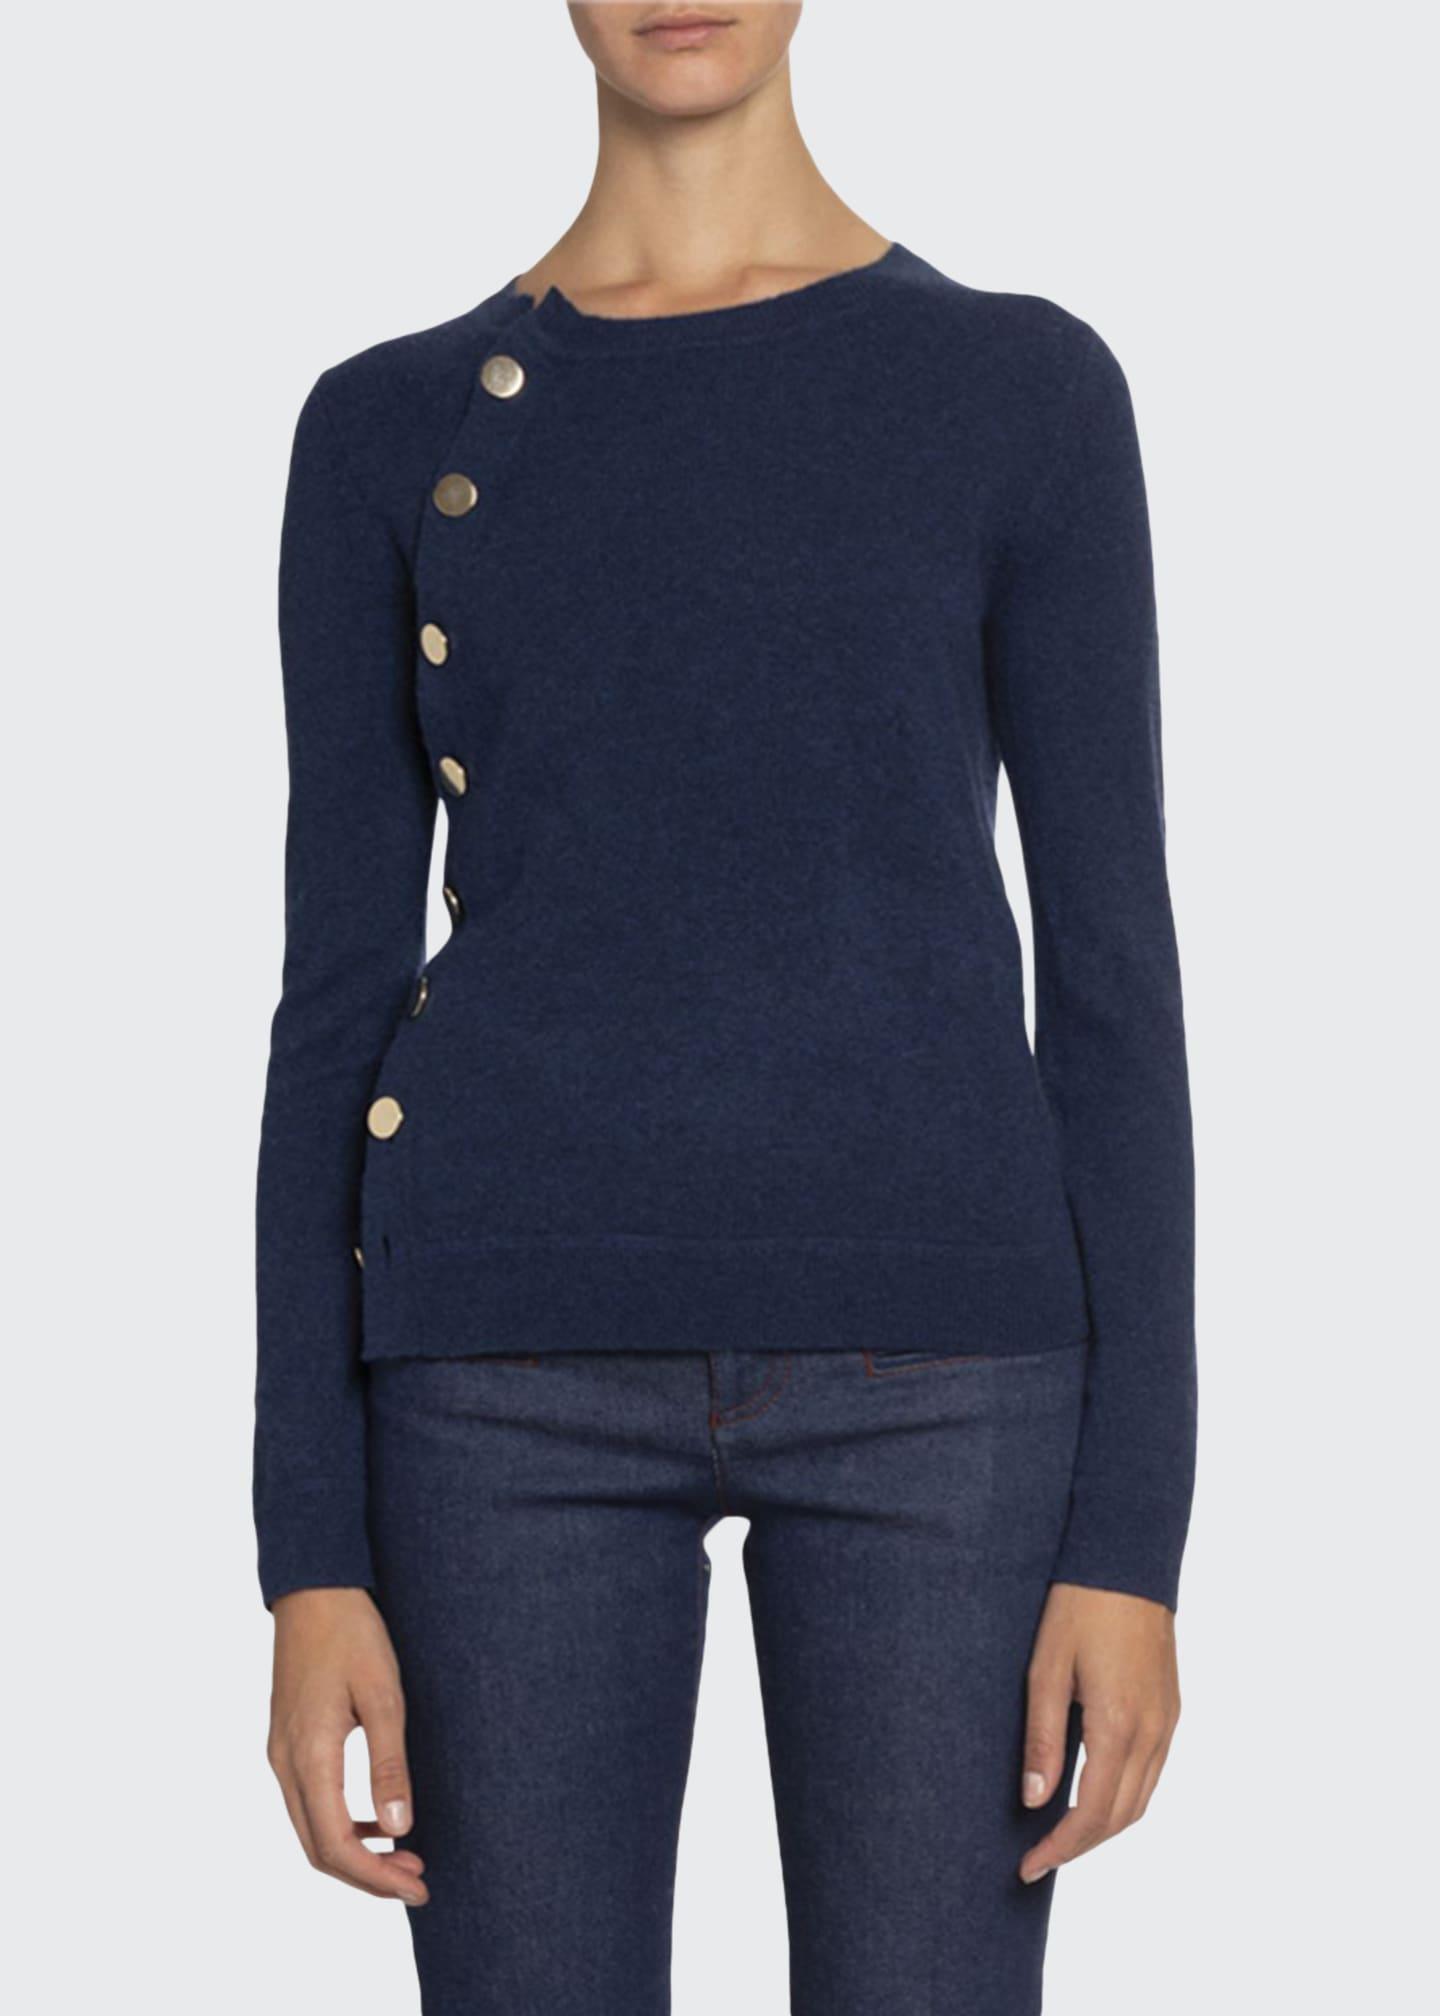 Altuzarra Cashmere Crewneck Button-Front Sweater